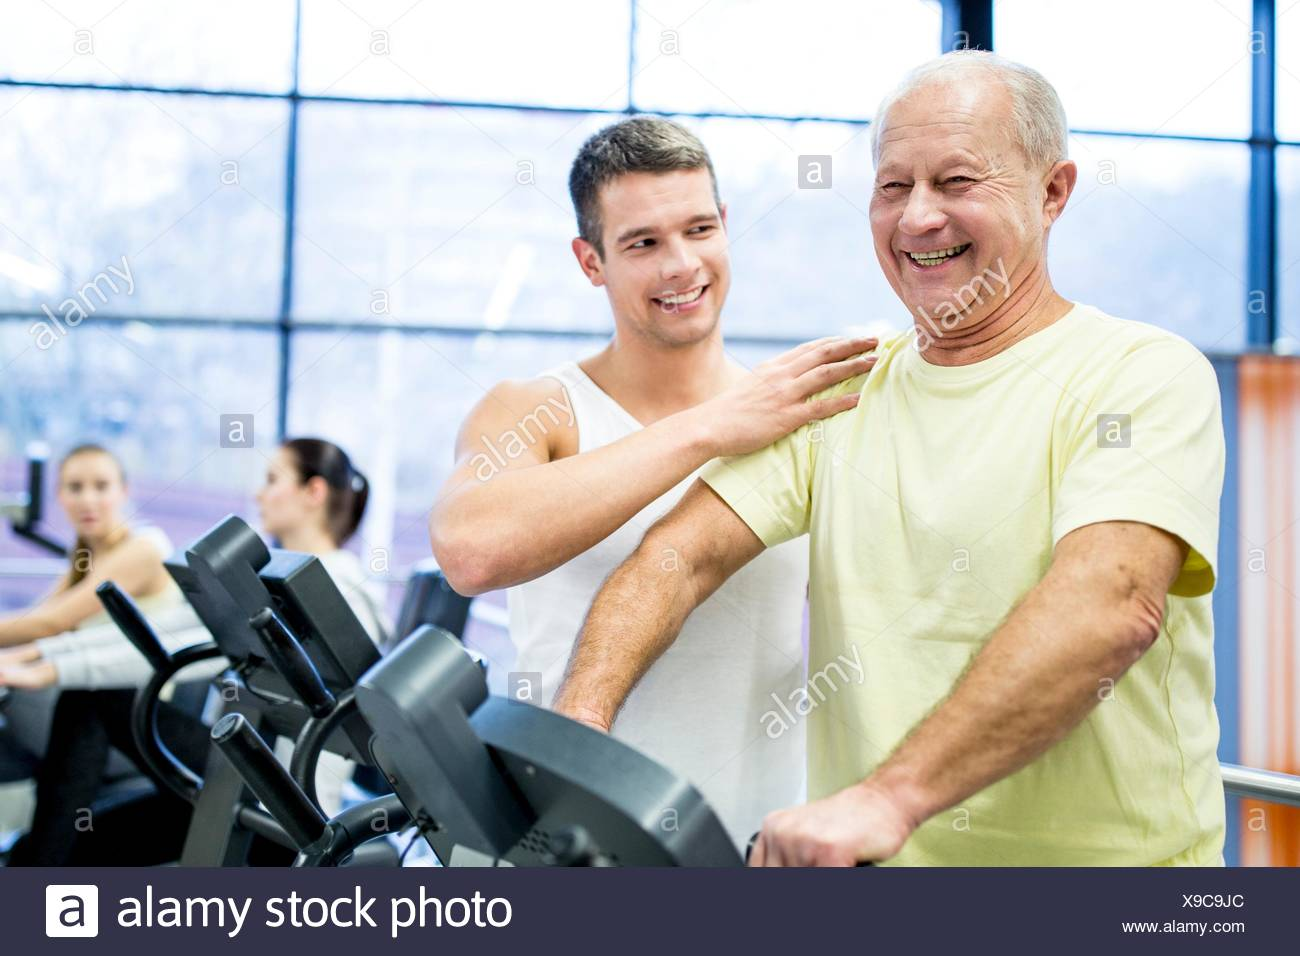 PROPERTY RELEASED. MODEL RELEASED. Young man assisting senior man while exercising on exercise bike in gym. - Stock Image